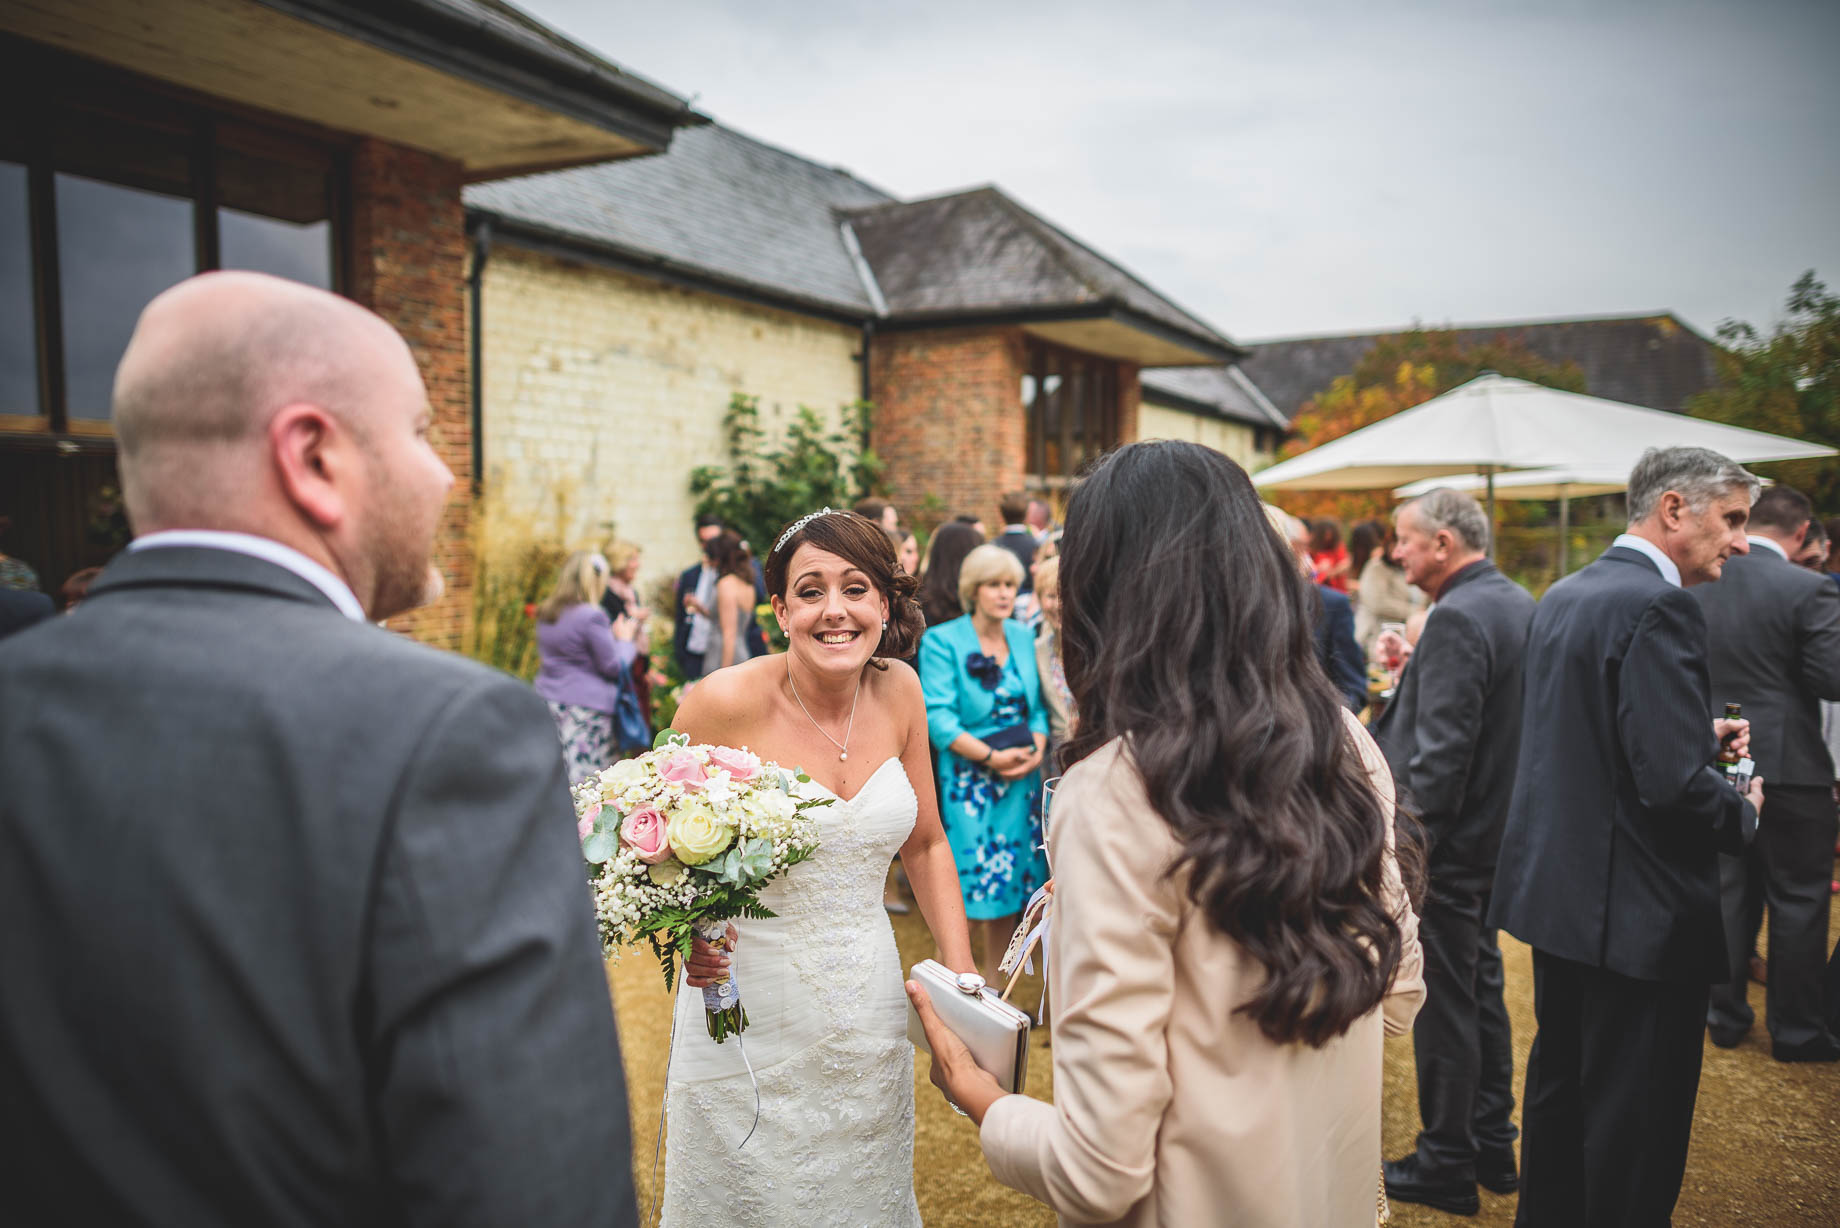 Bury Court Barn wedding photography - Guy Collier Photography - Karen and John (82 of 166)